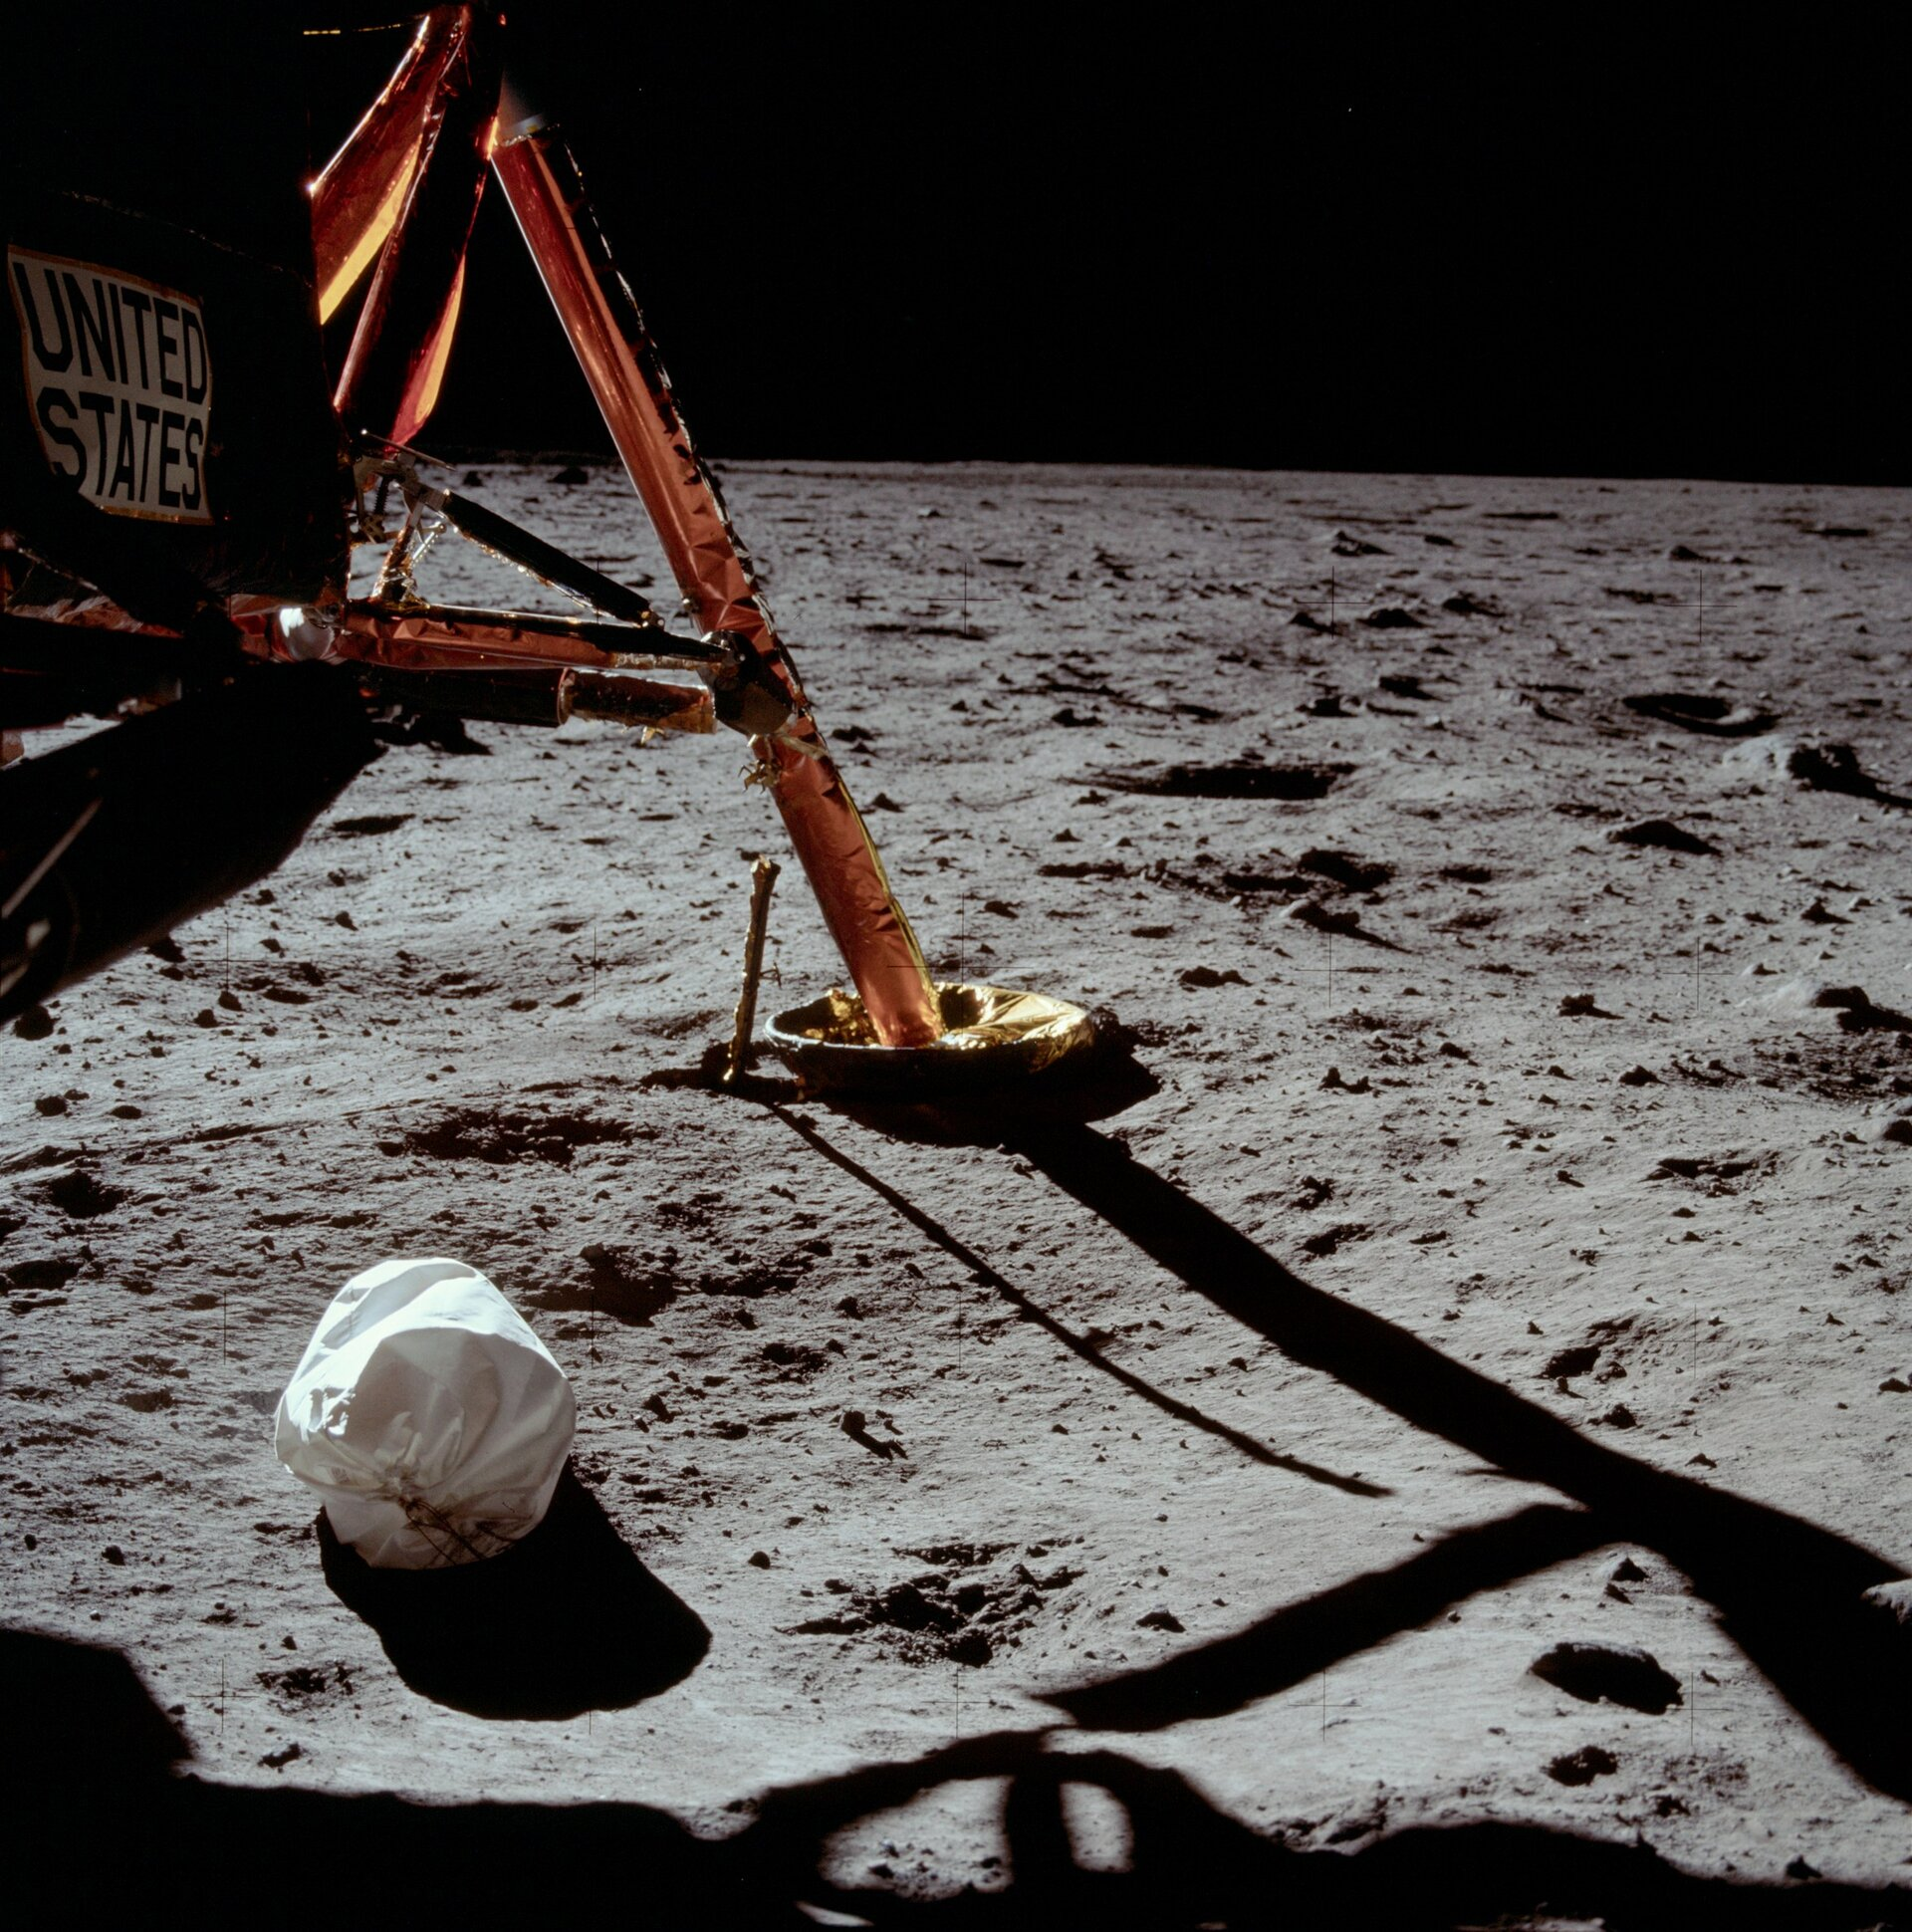 The first photograph taken on the Moon